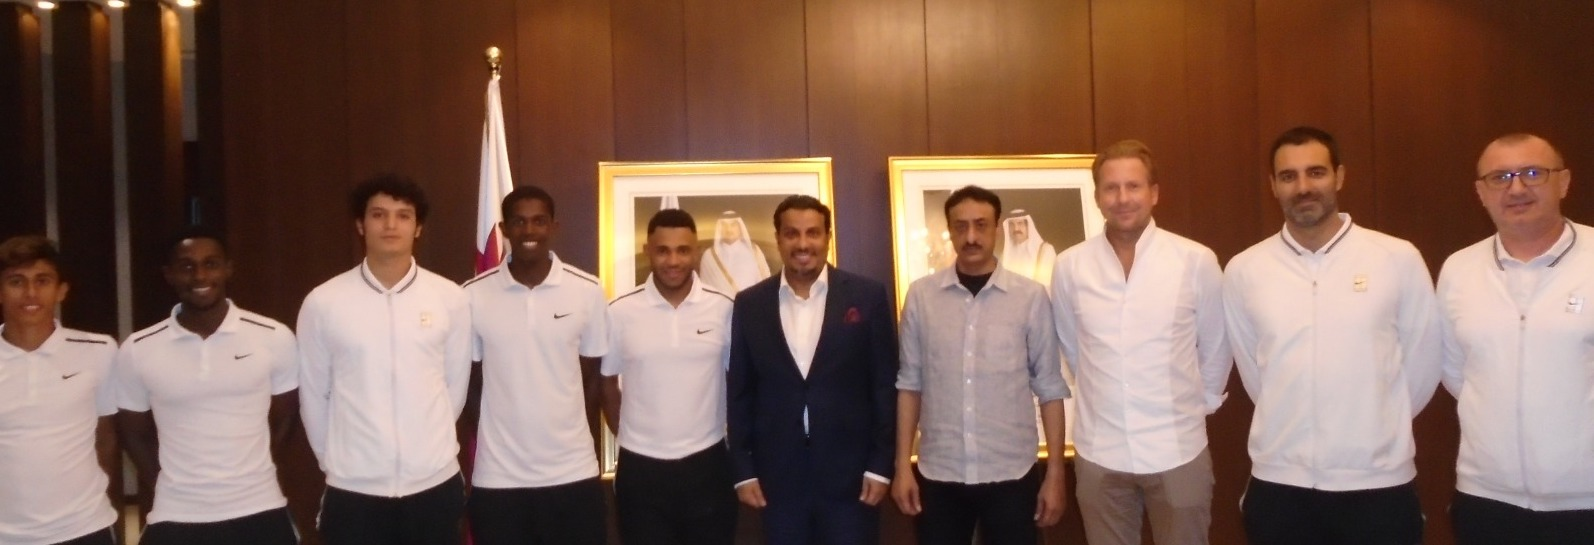 Qatar's Ambassador To Singapore Supports Our National Tennis Team